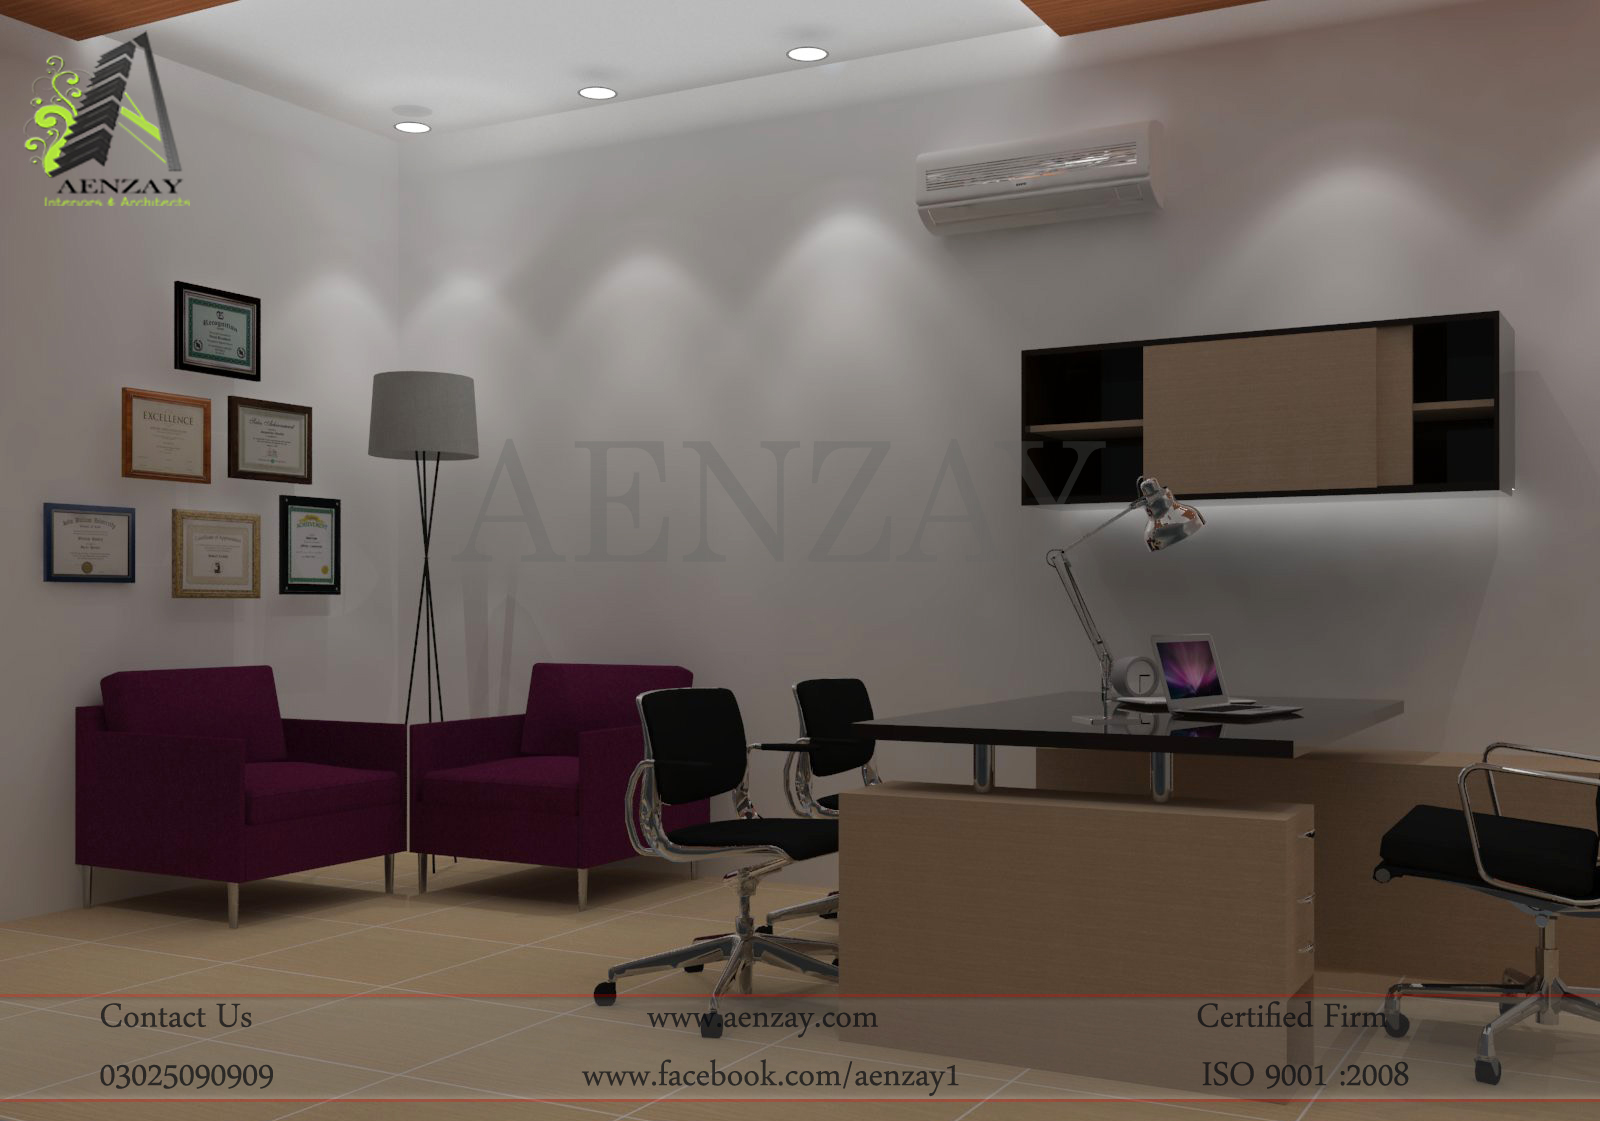 China plates project marketing director office design by for Director office interior design